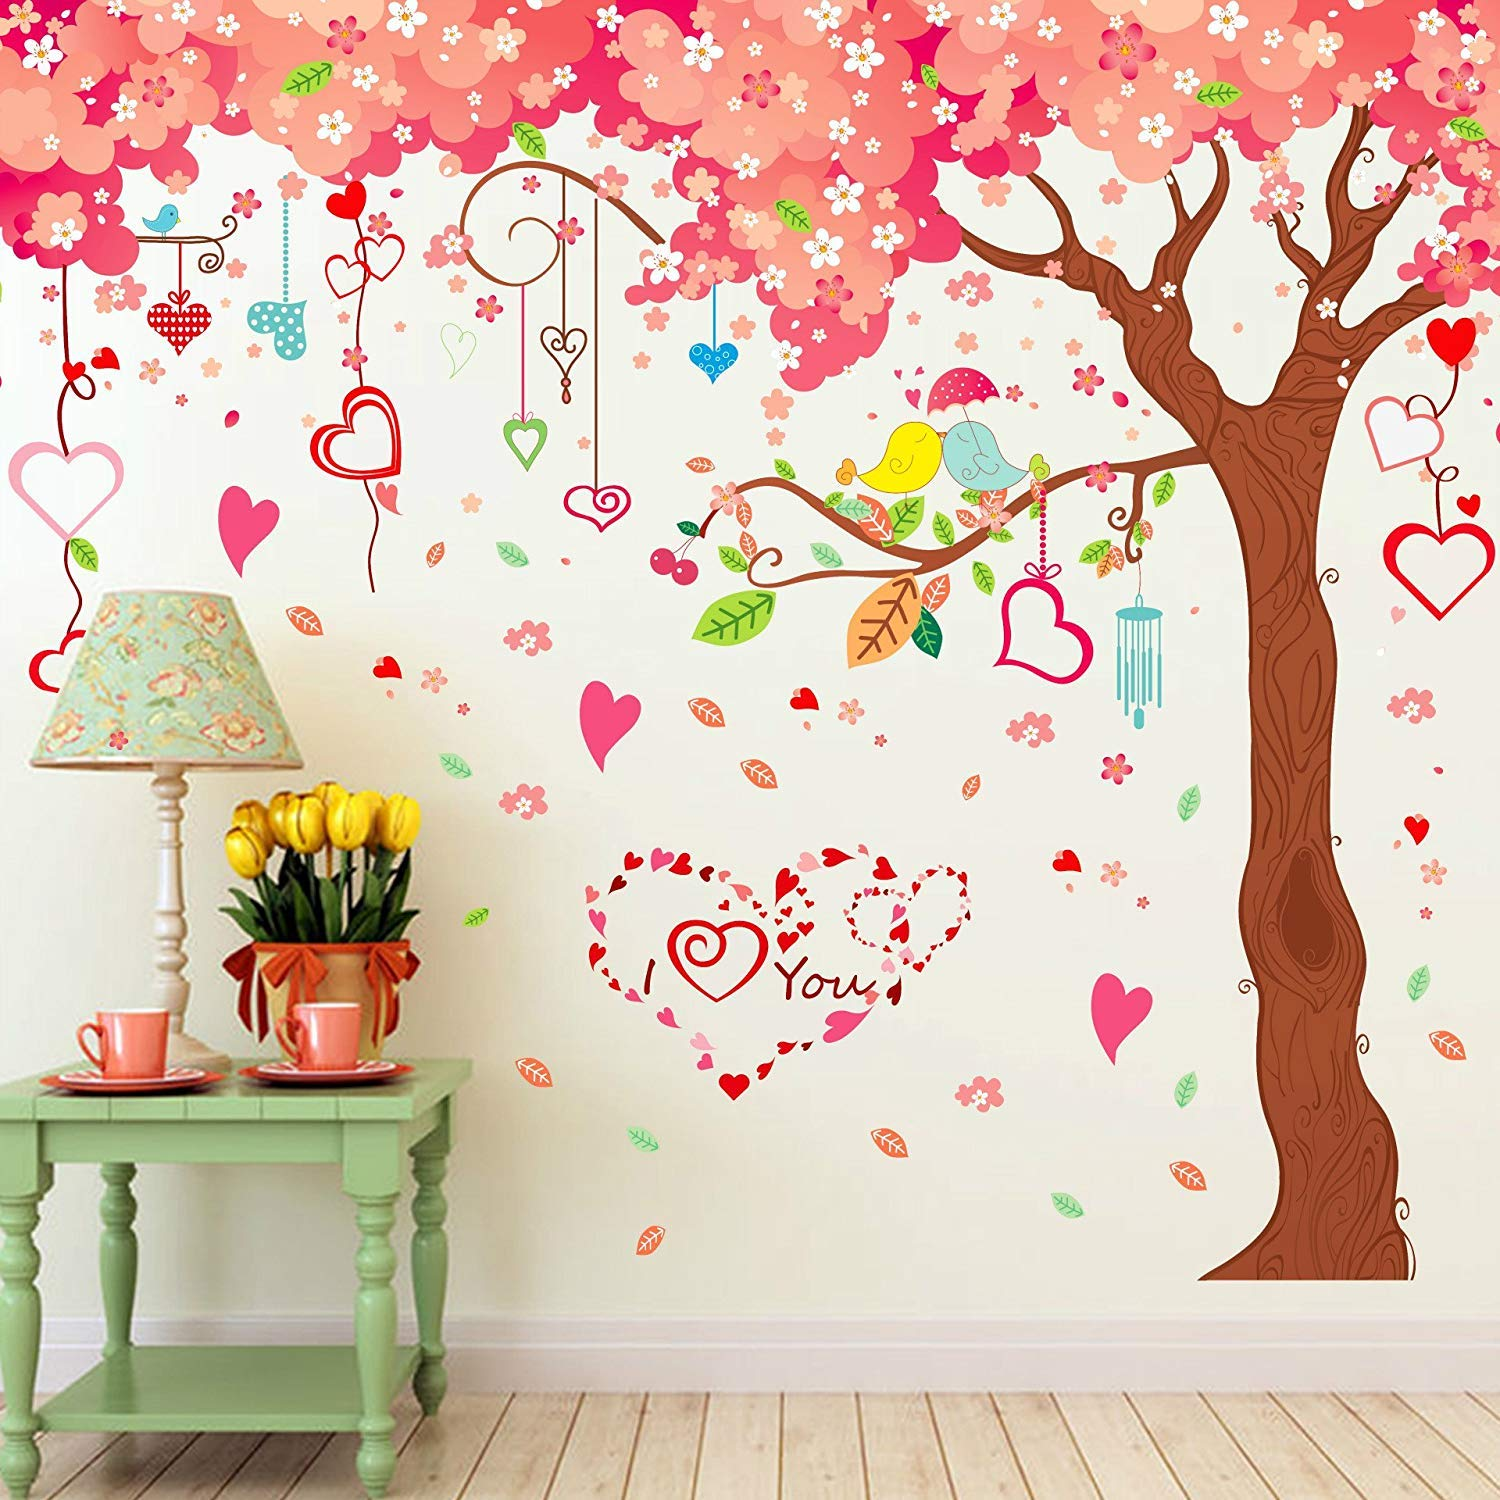 LiveGallery Large Tree Wall Decals Removable Pink Cherry Flower Wall Stickers DIY Heart and Birds Wall Decor 3d art for Home Wall Bedroom Girls Nursery Rooms Living Room Decoration 6 sheets of 12x36